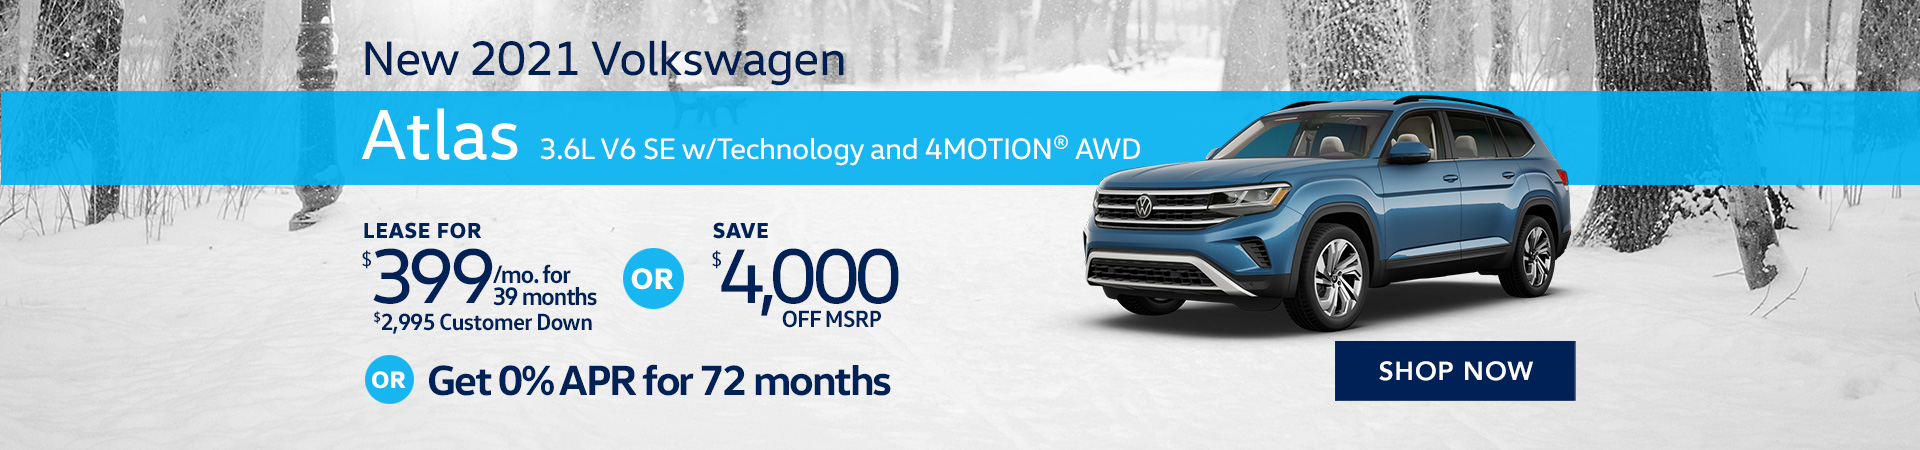 BVW_1920x450_2021 Volkswagen Atlas 3.6L V6 SE w_Technology and 4MOTION® AWD_03_21